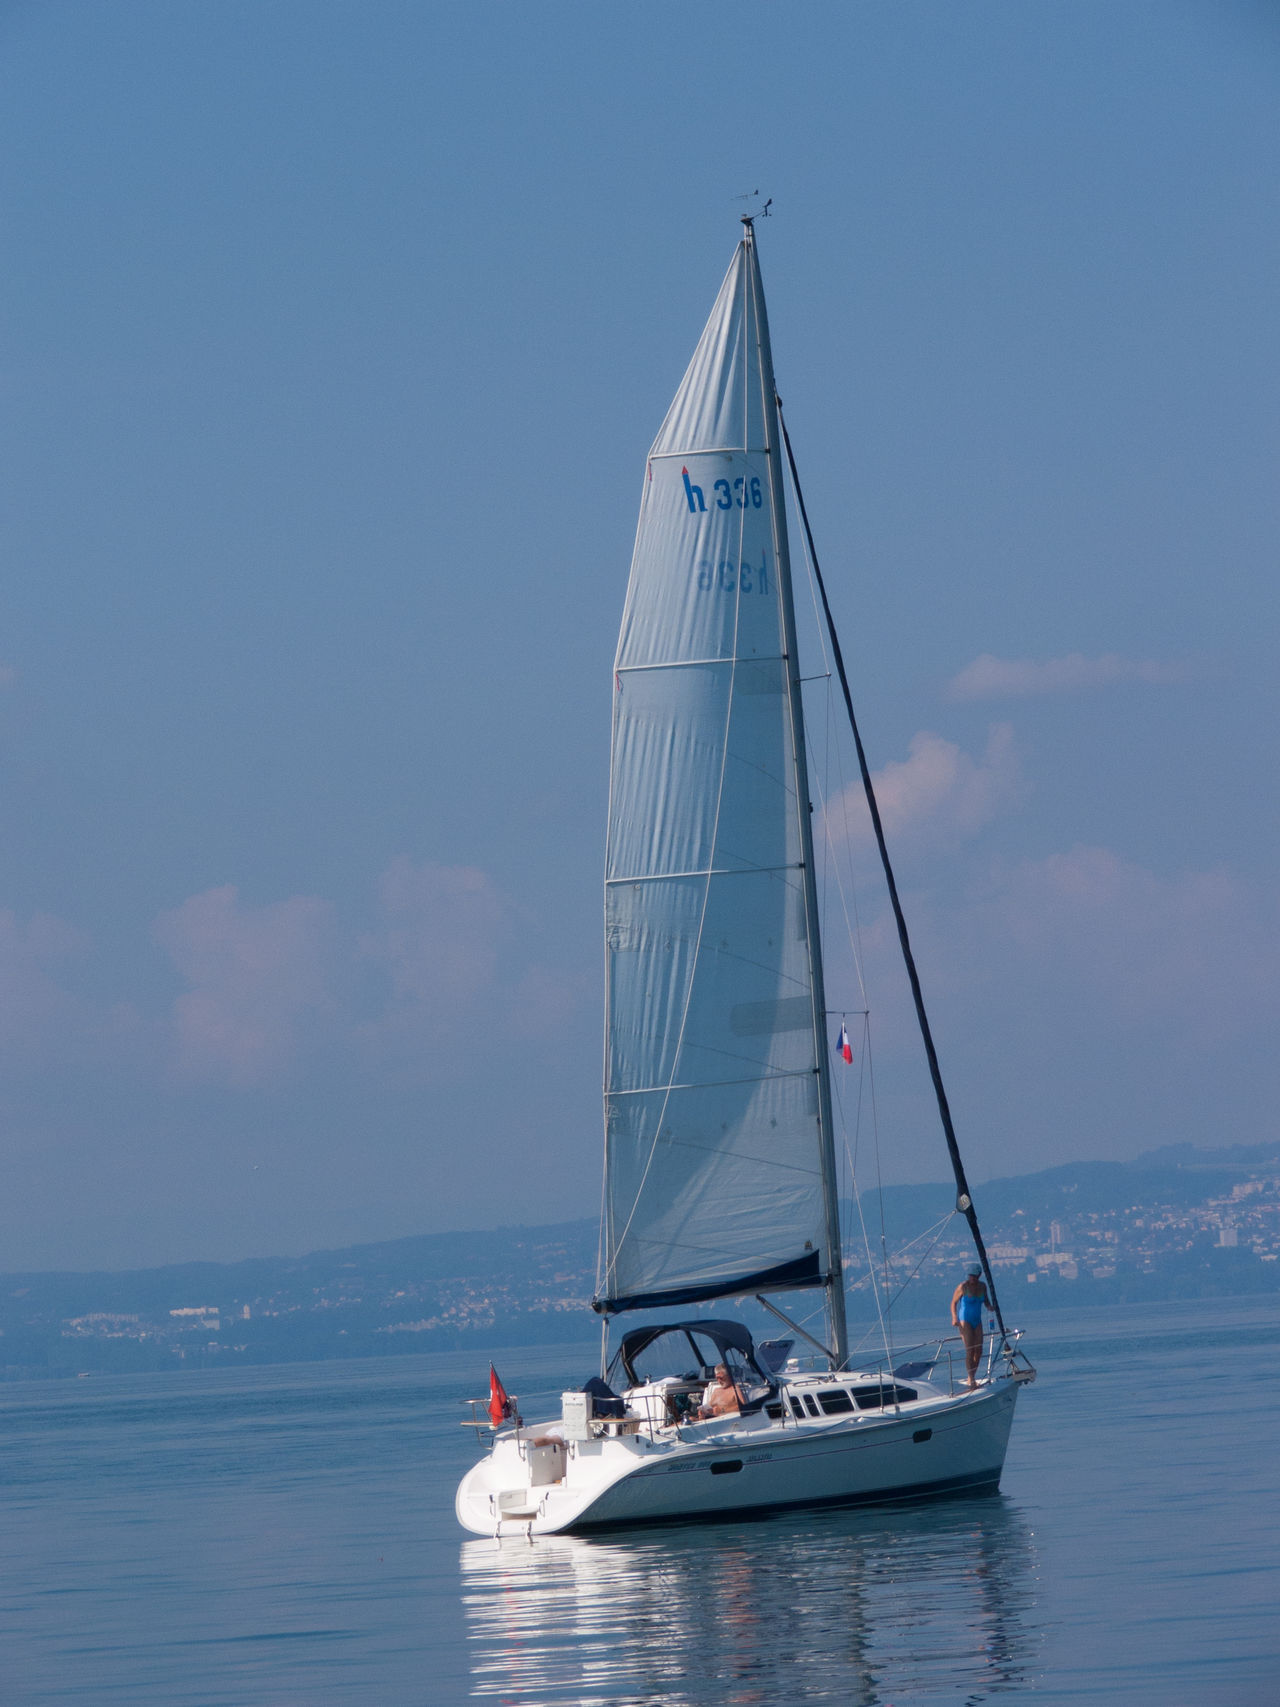 lake leman,haute savoie,france Activity Aquatic Sport Competitive Sport Day Extreme Sports Horizon Over Water Nautical Vessel Outdoors People Piloting Regatta Sailboat Sailing Sailing Ship Sea Sky Sport Sports Race Transportation Travel Water Yachting